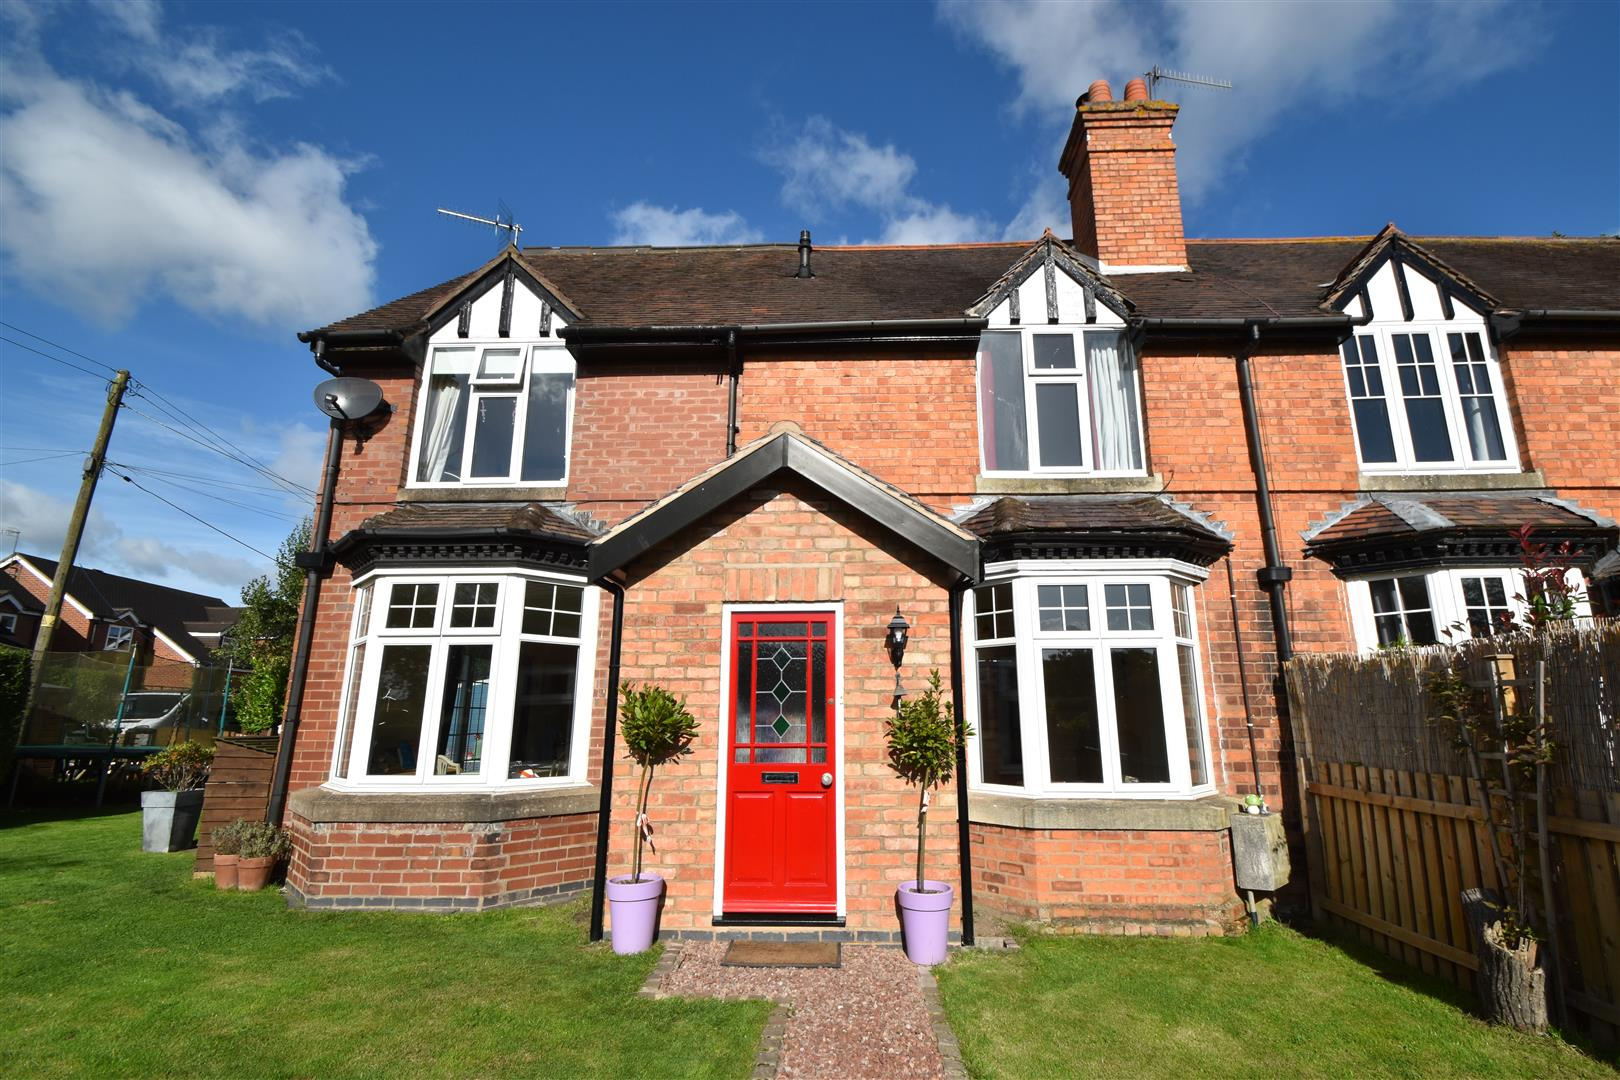 4 Bedrooms Semi Detached House for sale in O'keys Lane, Fernhill Heath, Worcester